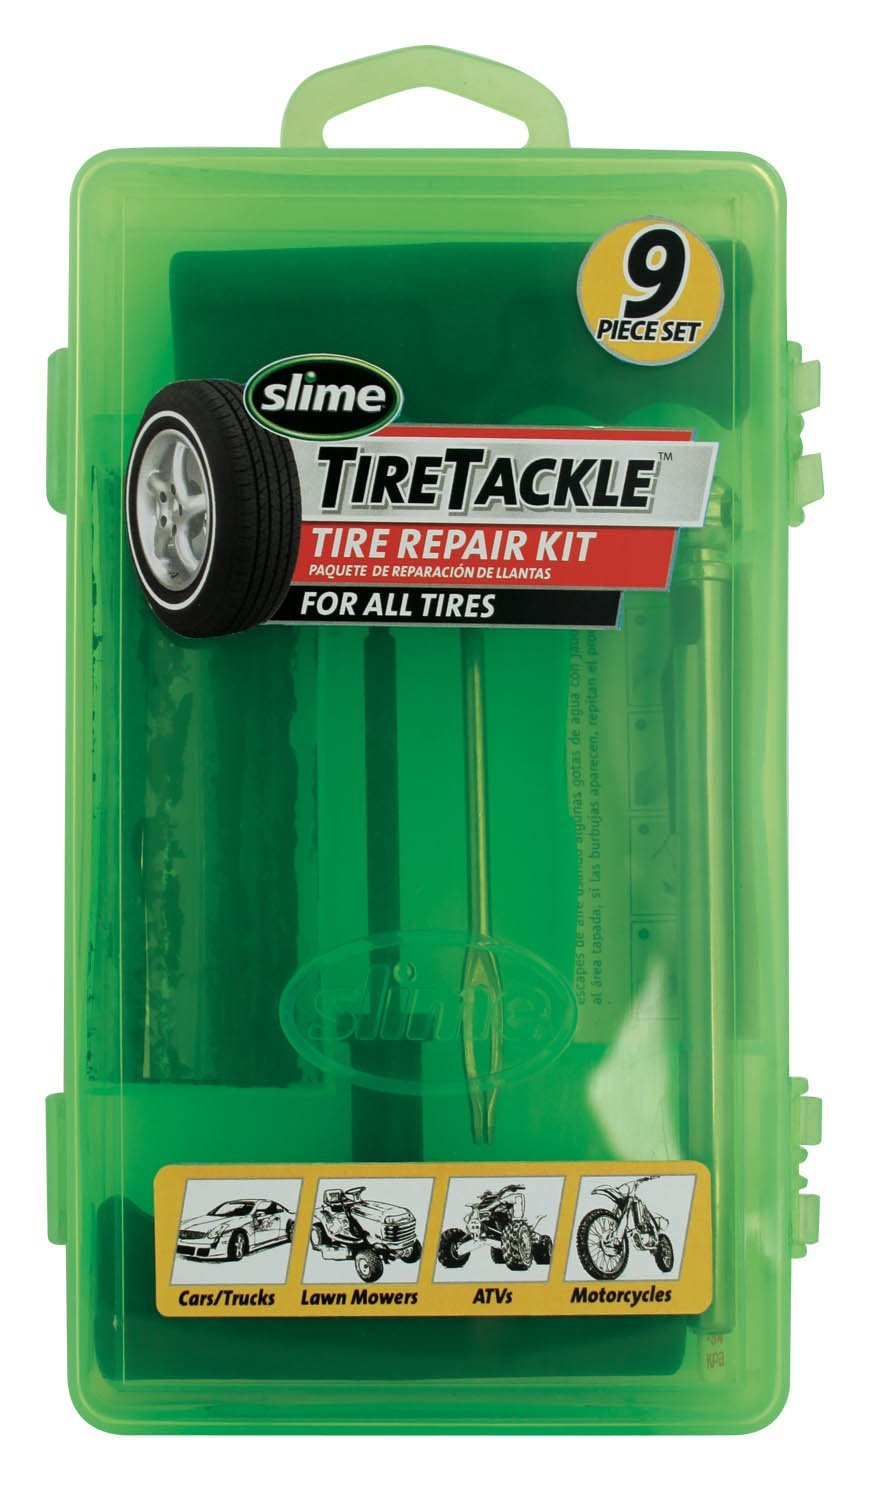 Slime Tire Repair Kit Do I Need Rubber Cement Or Not